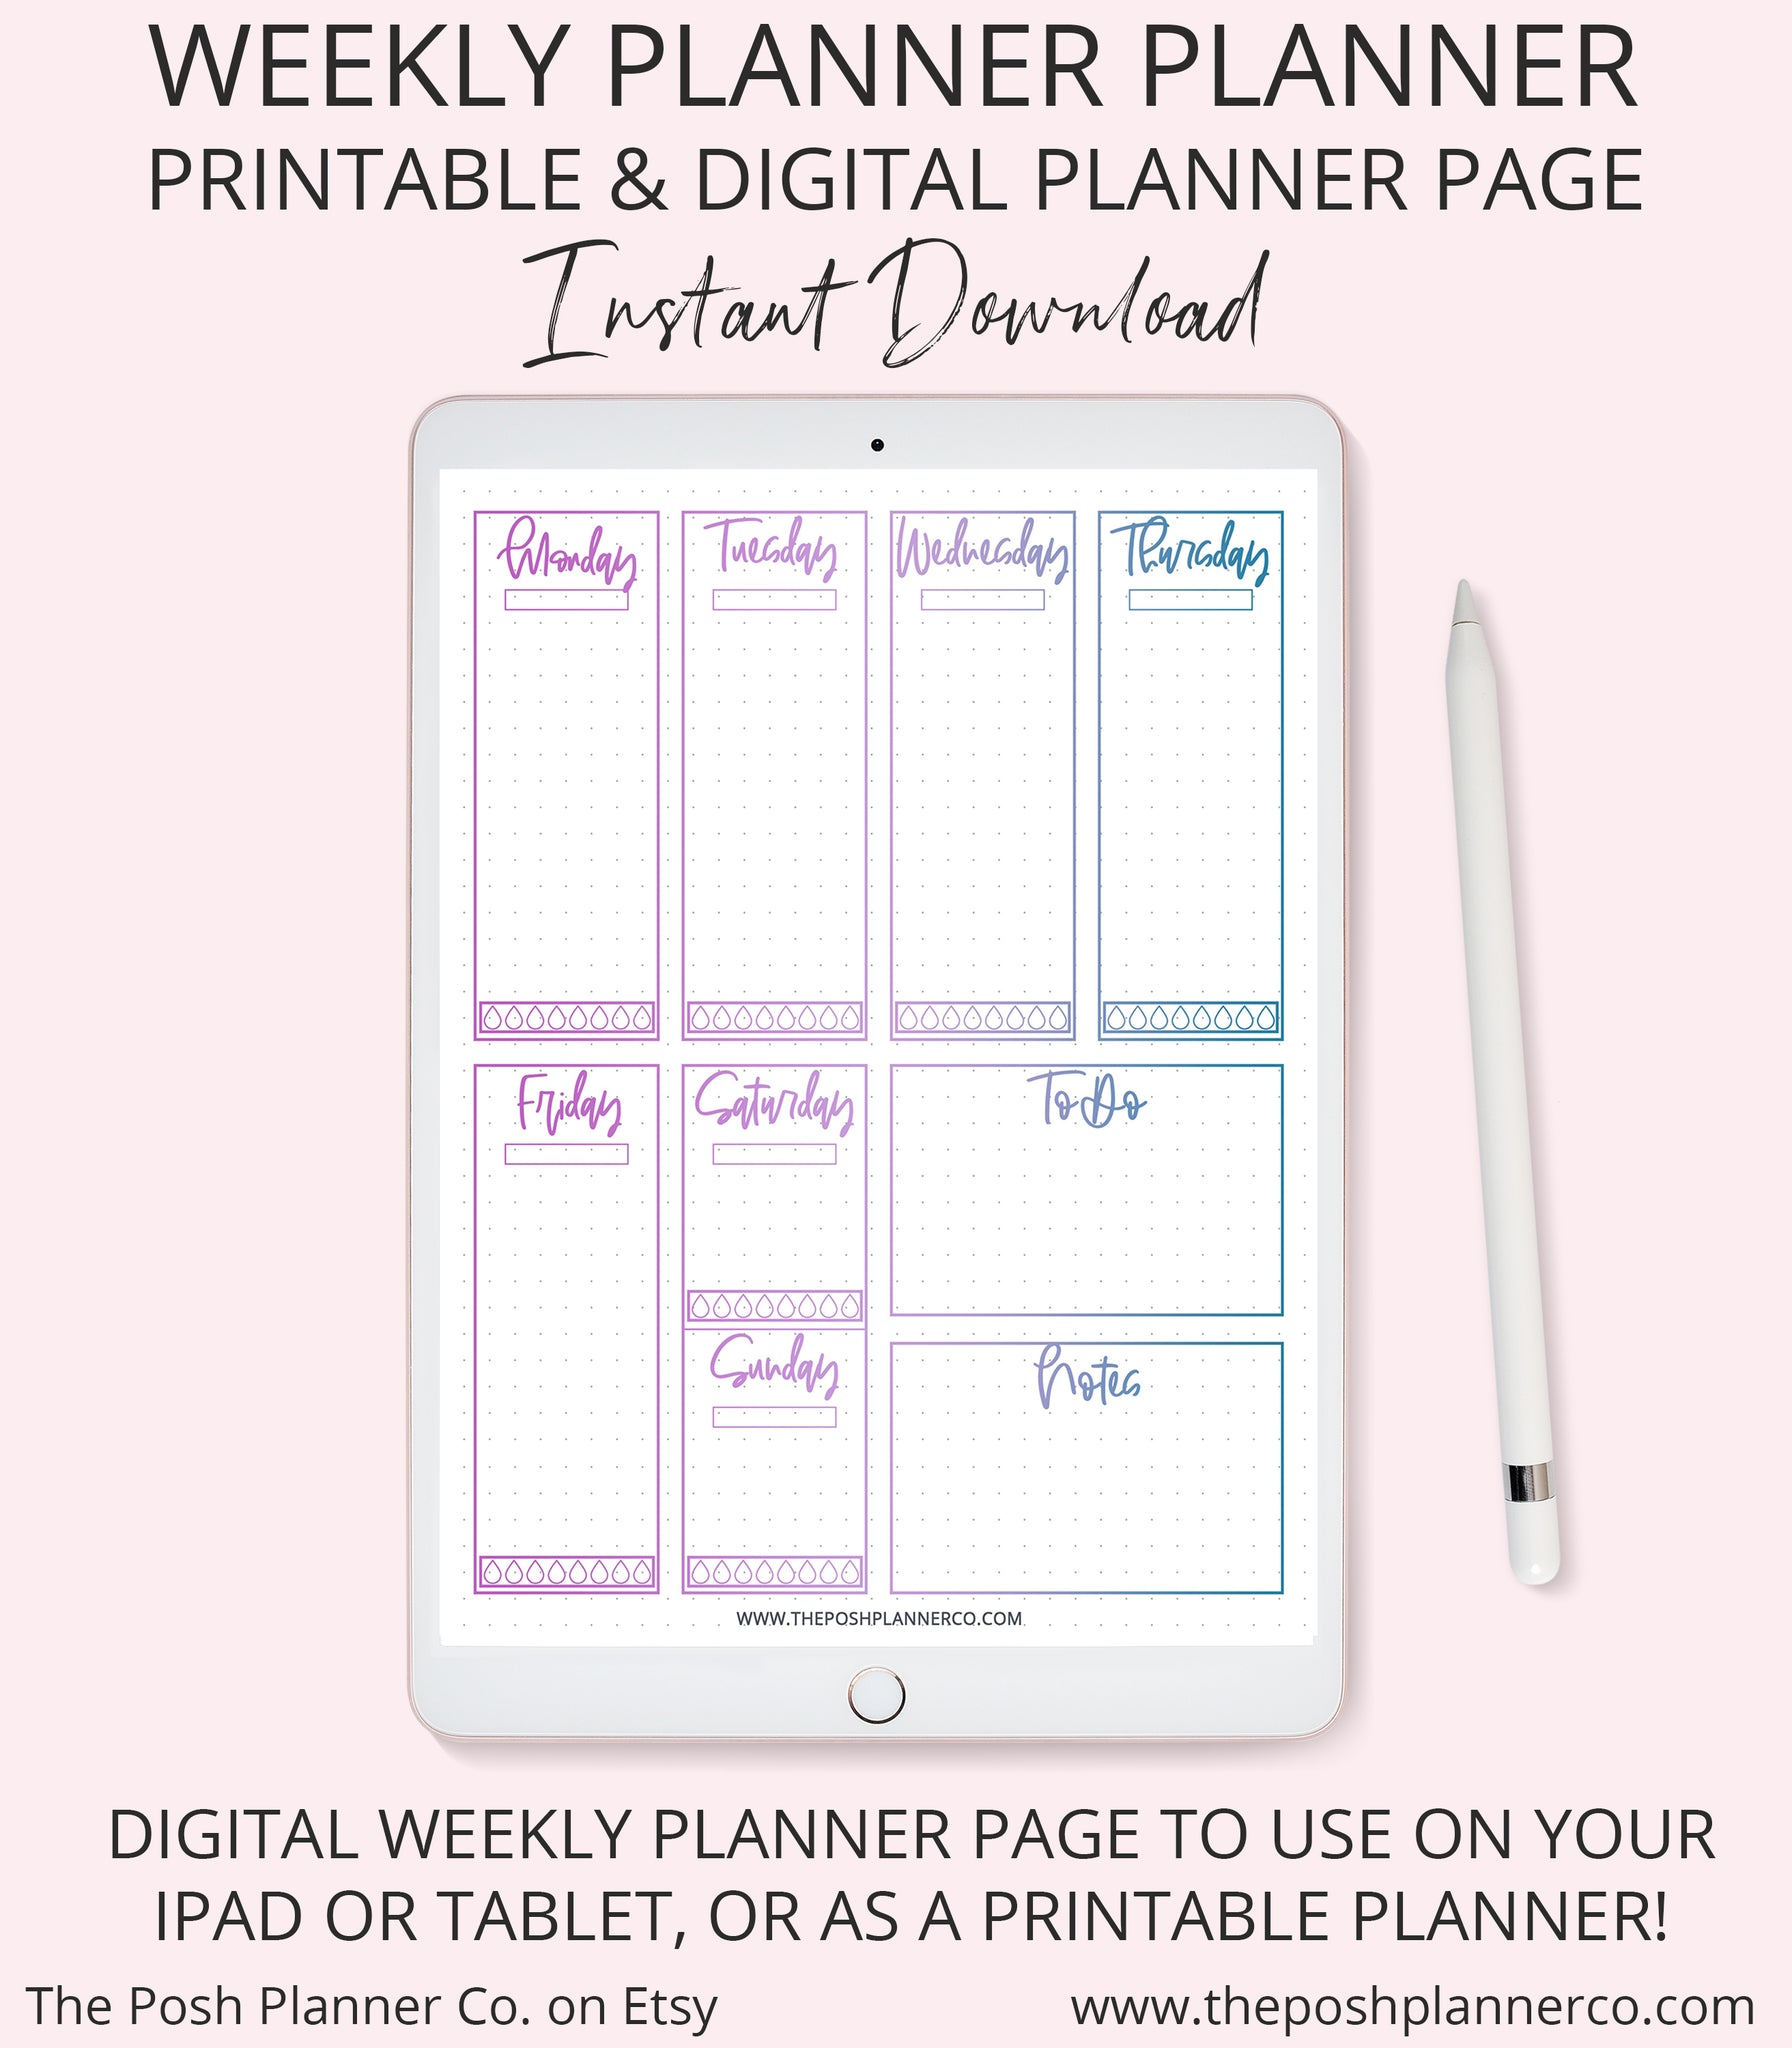 photo regarding Weekly Planner Page identify Printable Weekly Planner - Planner Webpage Include